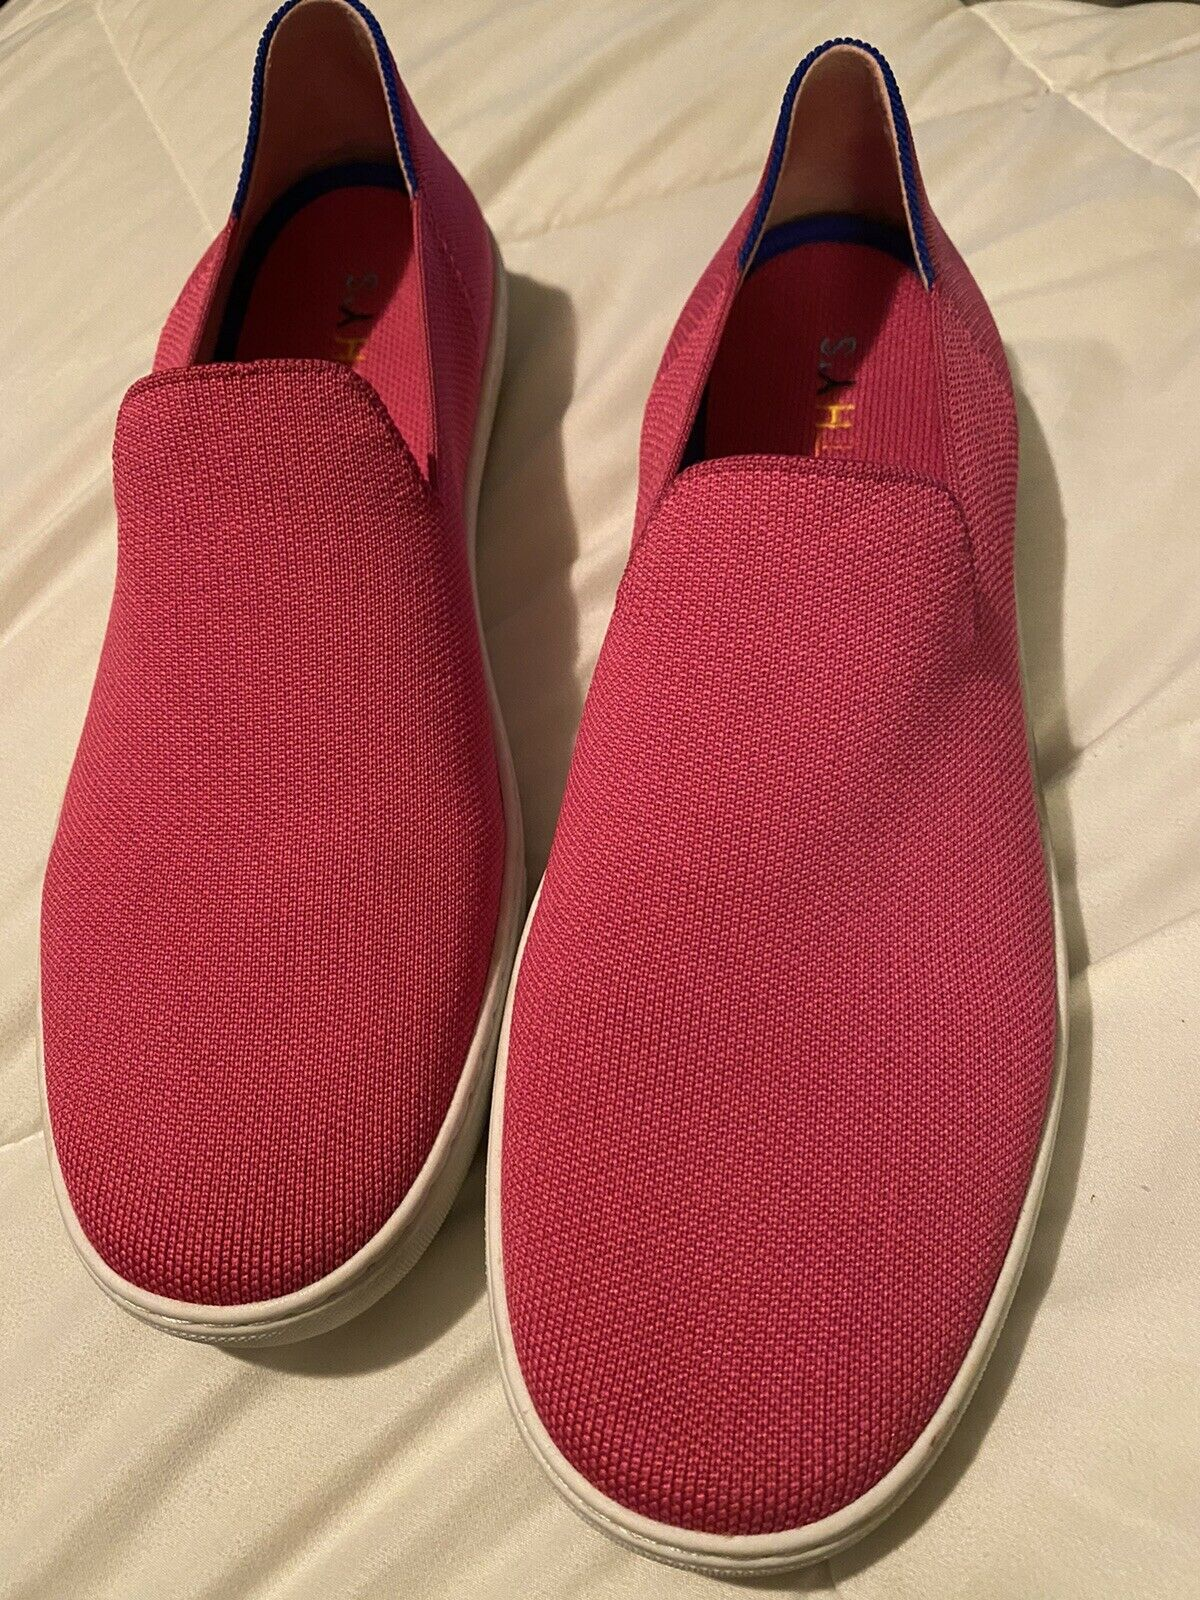 Rothys sneakers Bubblegum pink size 12.5 - image 1